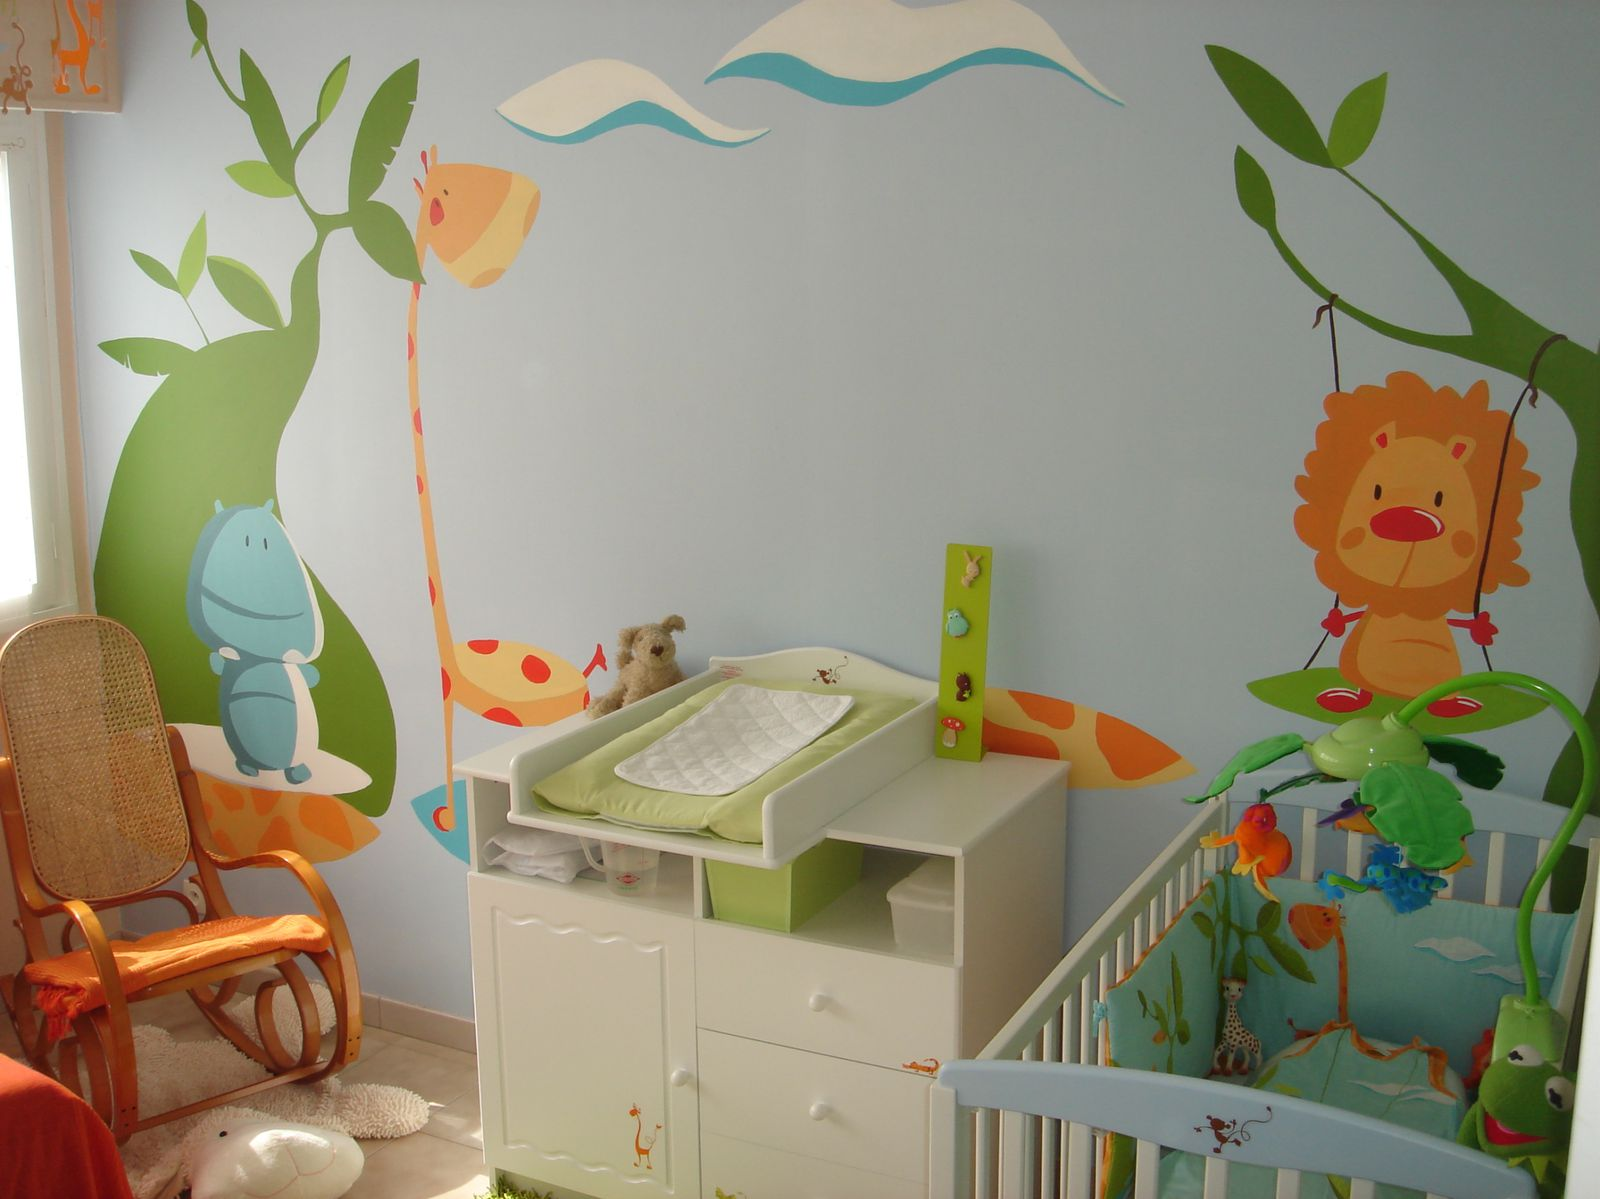 D co de chambre b b jank artiste peintre decorateur - Decoration murale chambre bebe ...